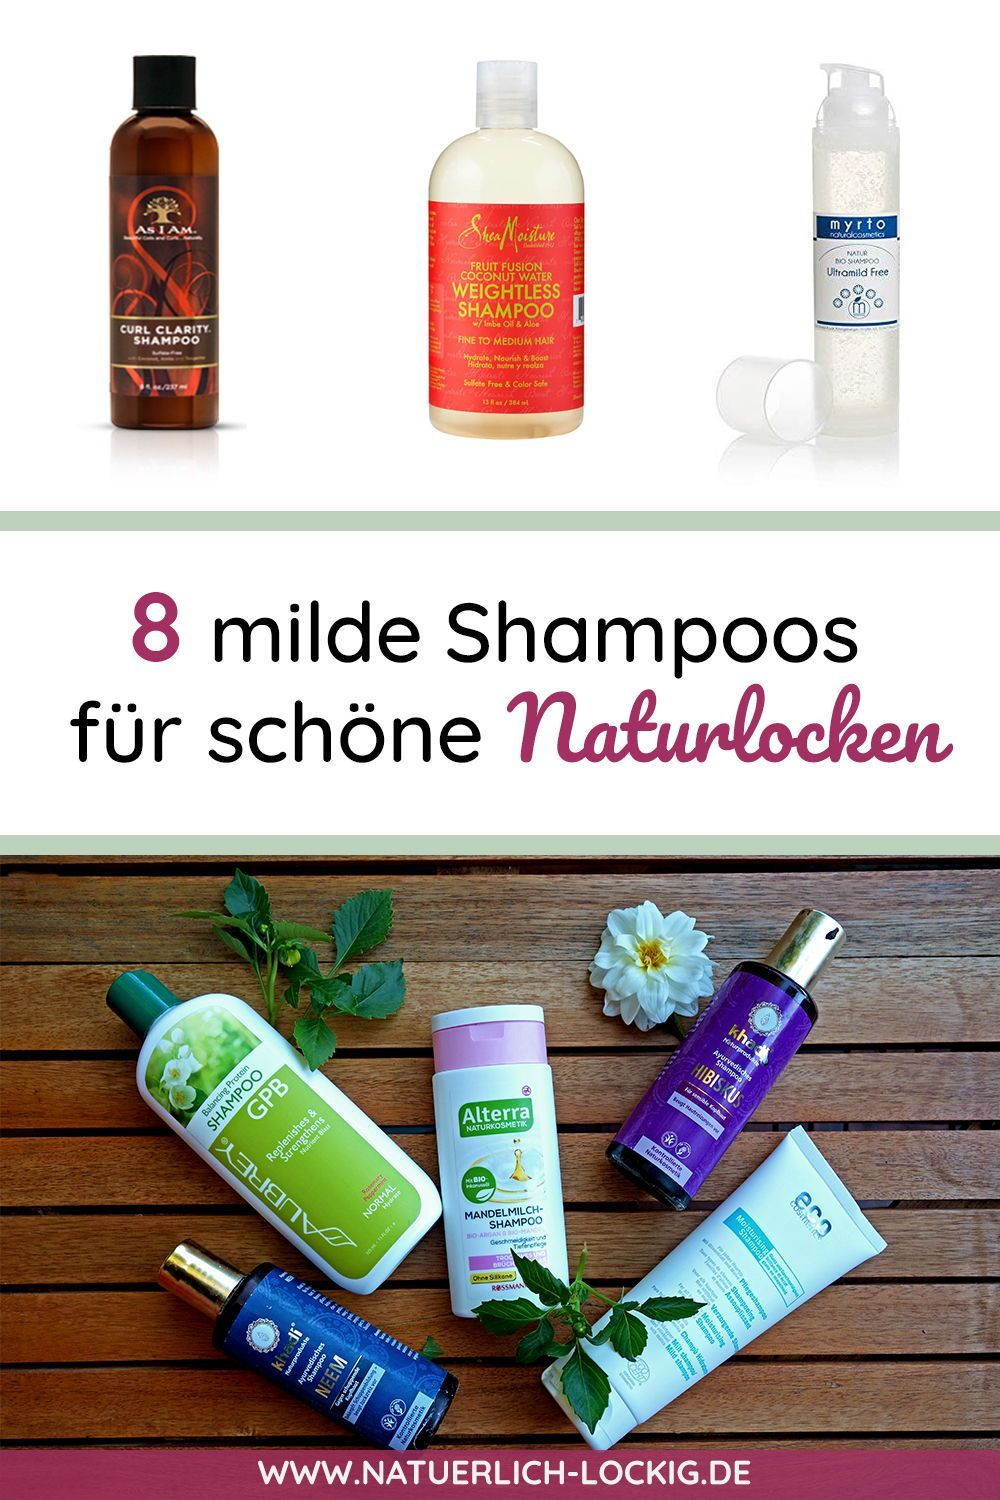 Top 8 Curls Shampoo Without Sulfates Silicones Parabens And Ad 1 Top 8 Locken Shampoo Ohne Sulfate Si In 2020 Curl Shampoo Shampoo Without Sulfate Shampoo